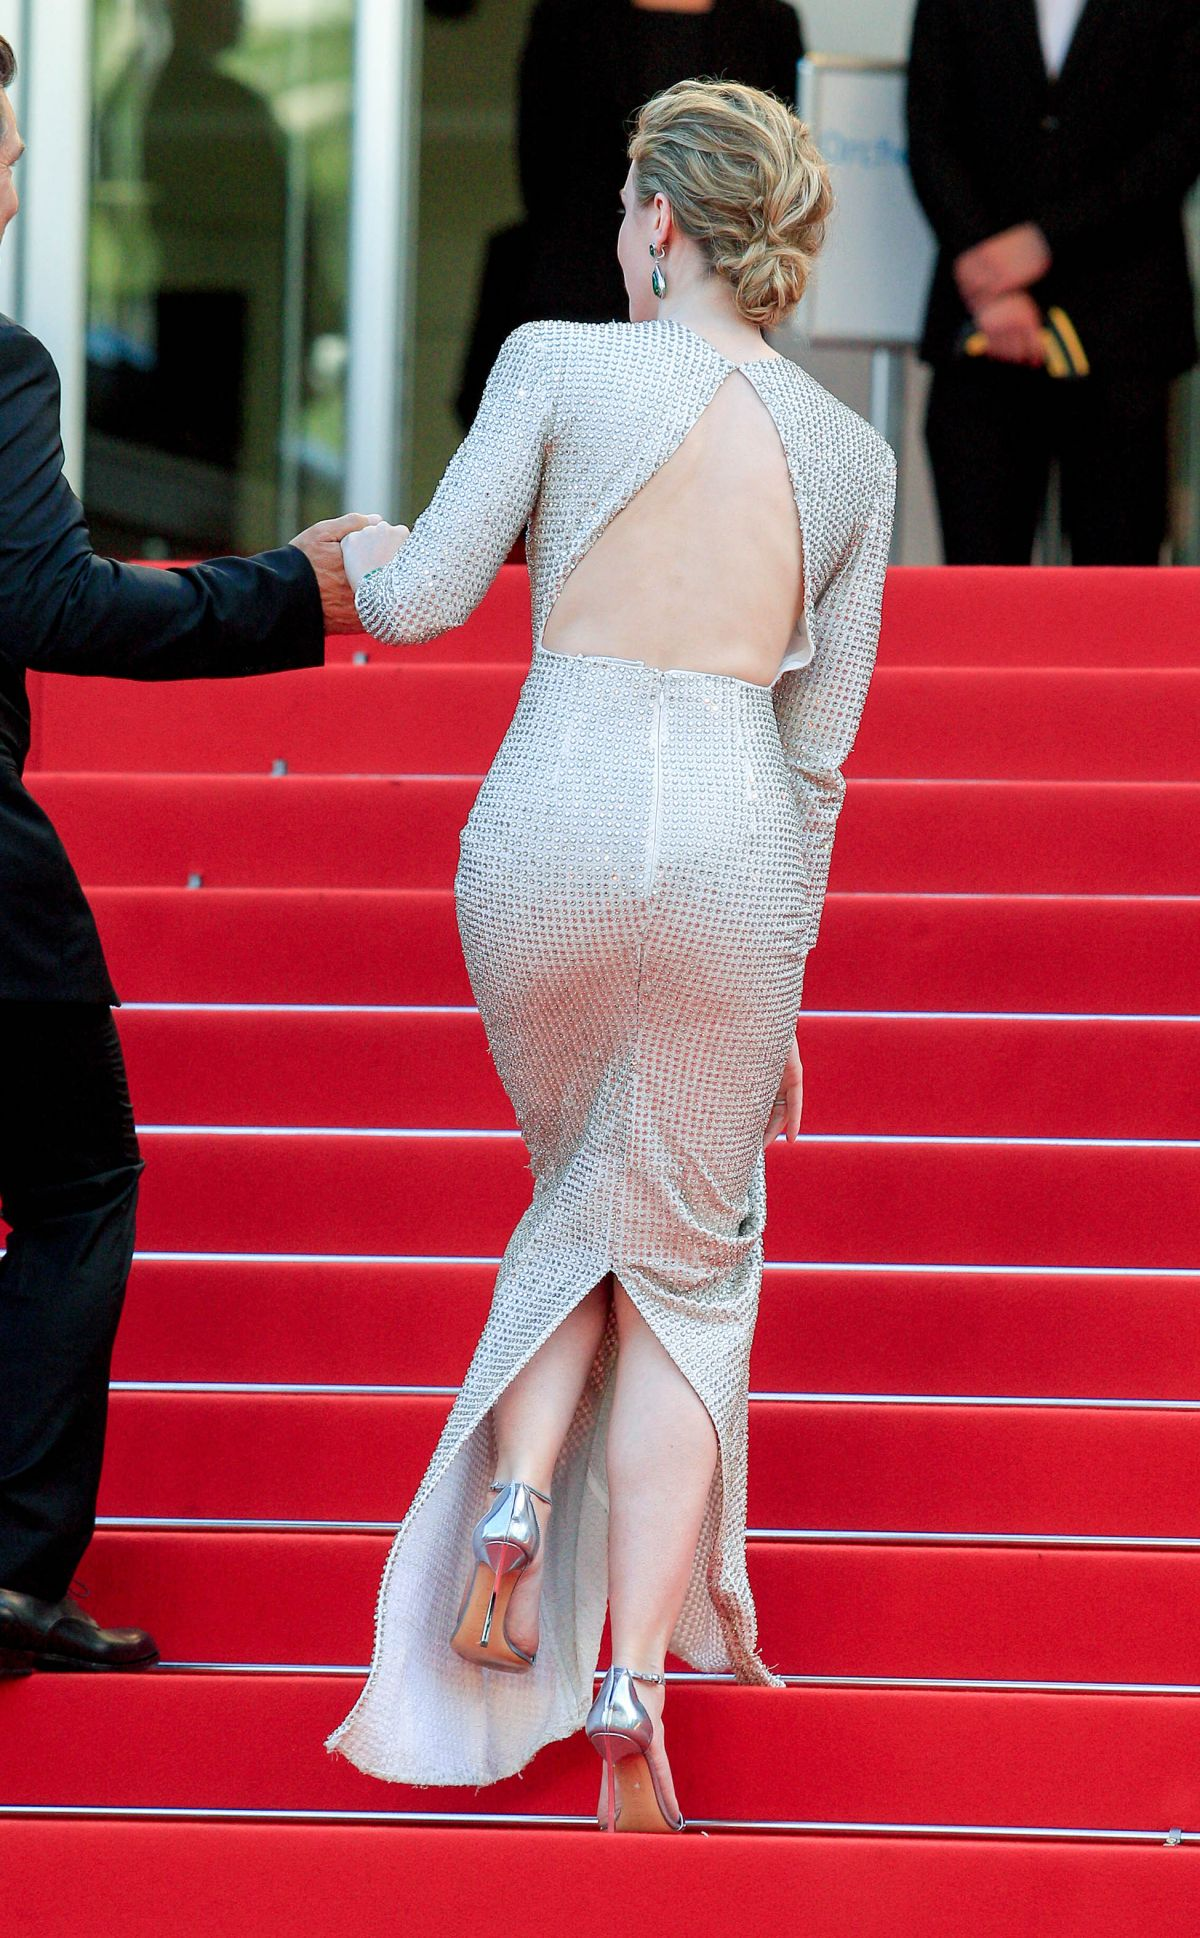 emily-blunt-at-sicario-premiere-at-cannes-film-festival_9.jpg